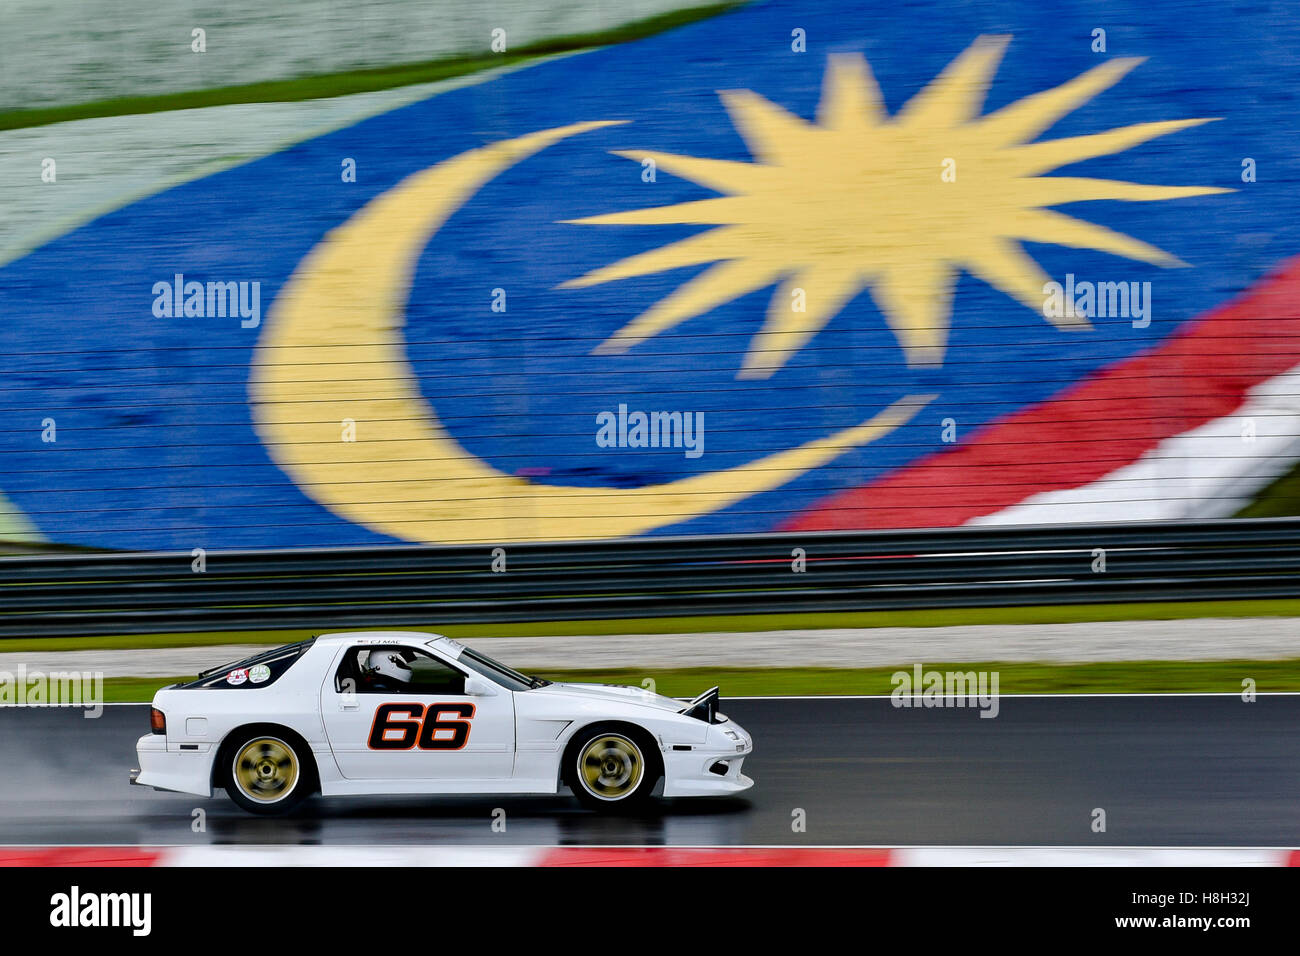 Mac Chung Jin Driving The (66) Mazda RX7 On Track During The Asia Classic